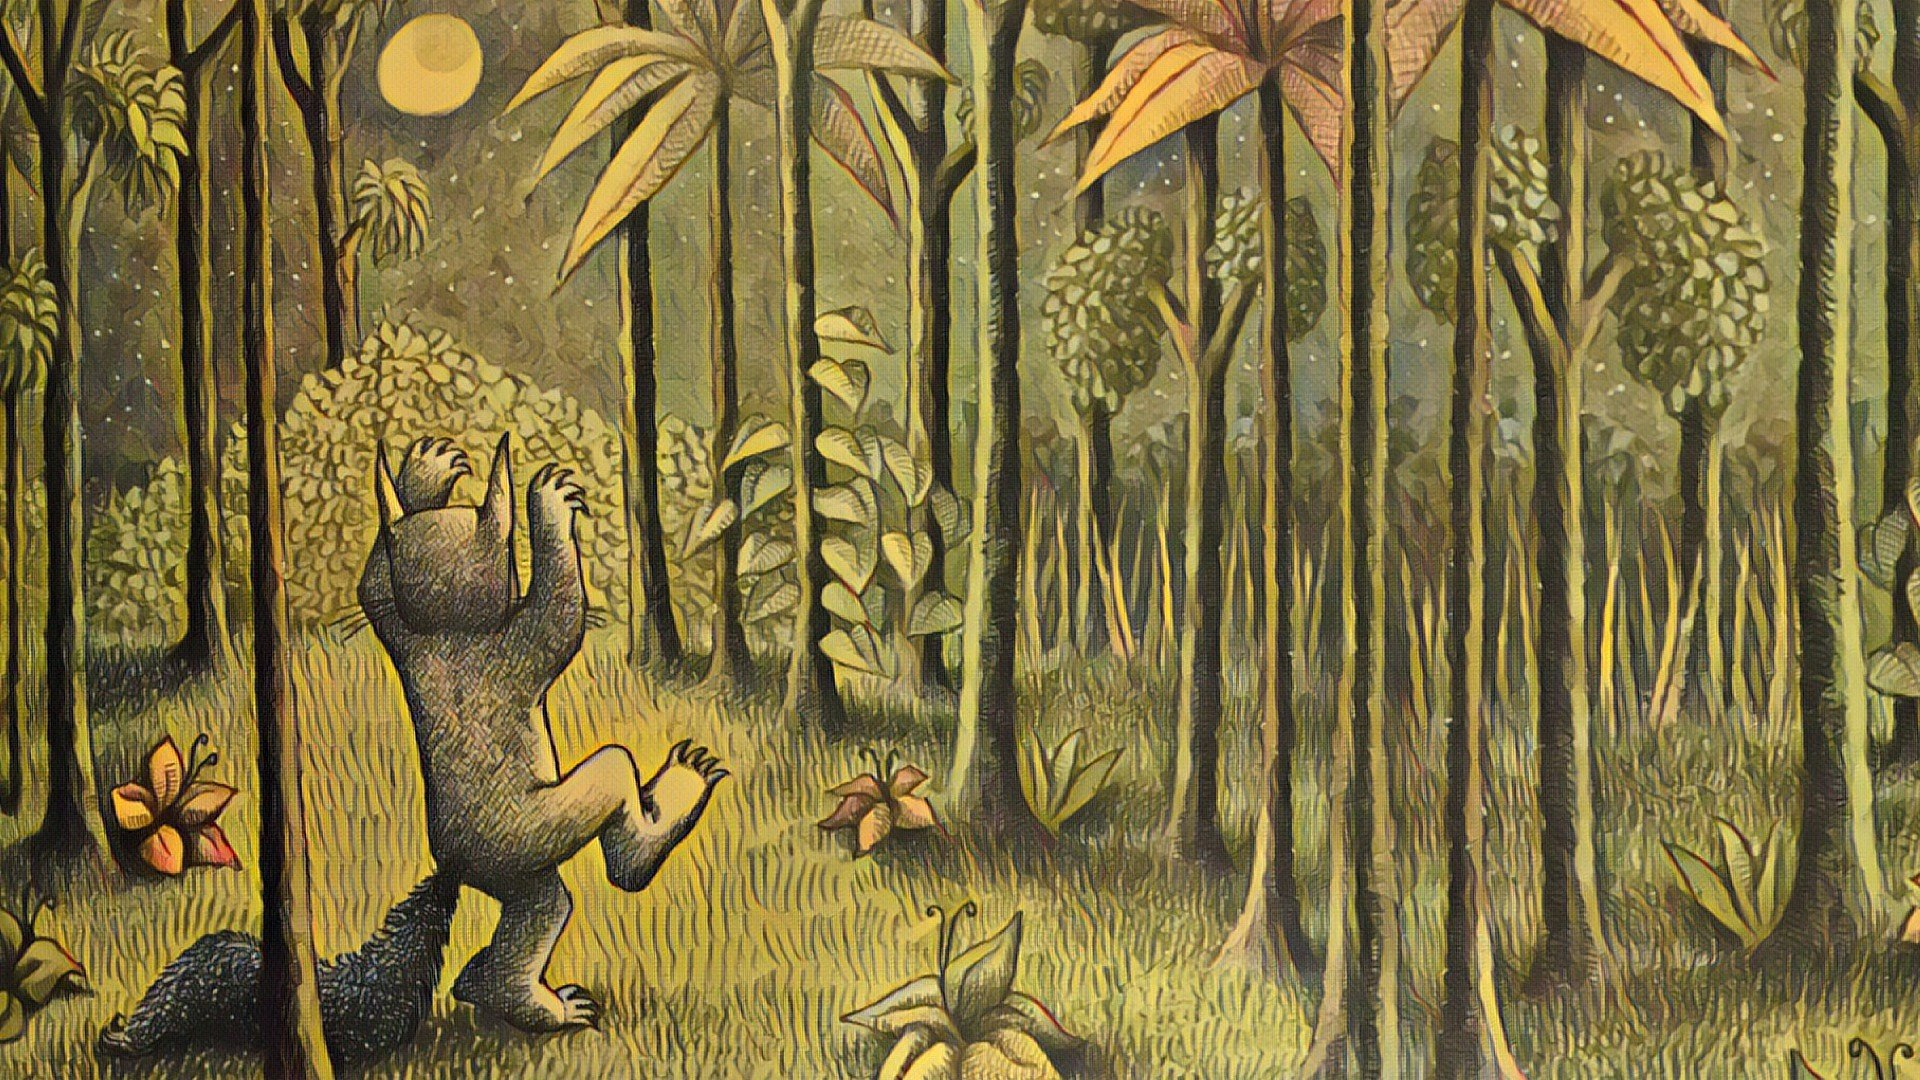 Maurice Sendak Where The Wild Things Are Night Forest Moon Hd